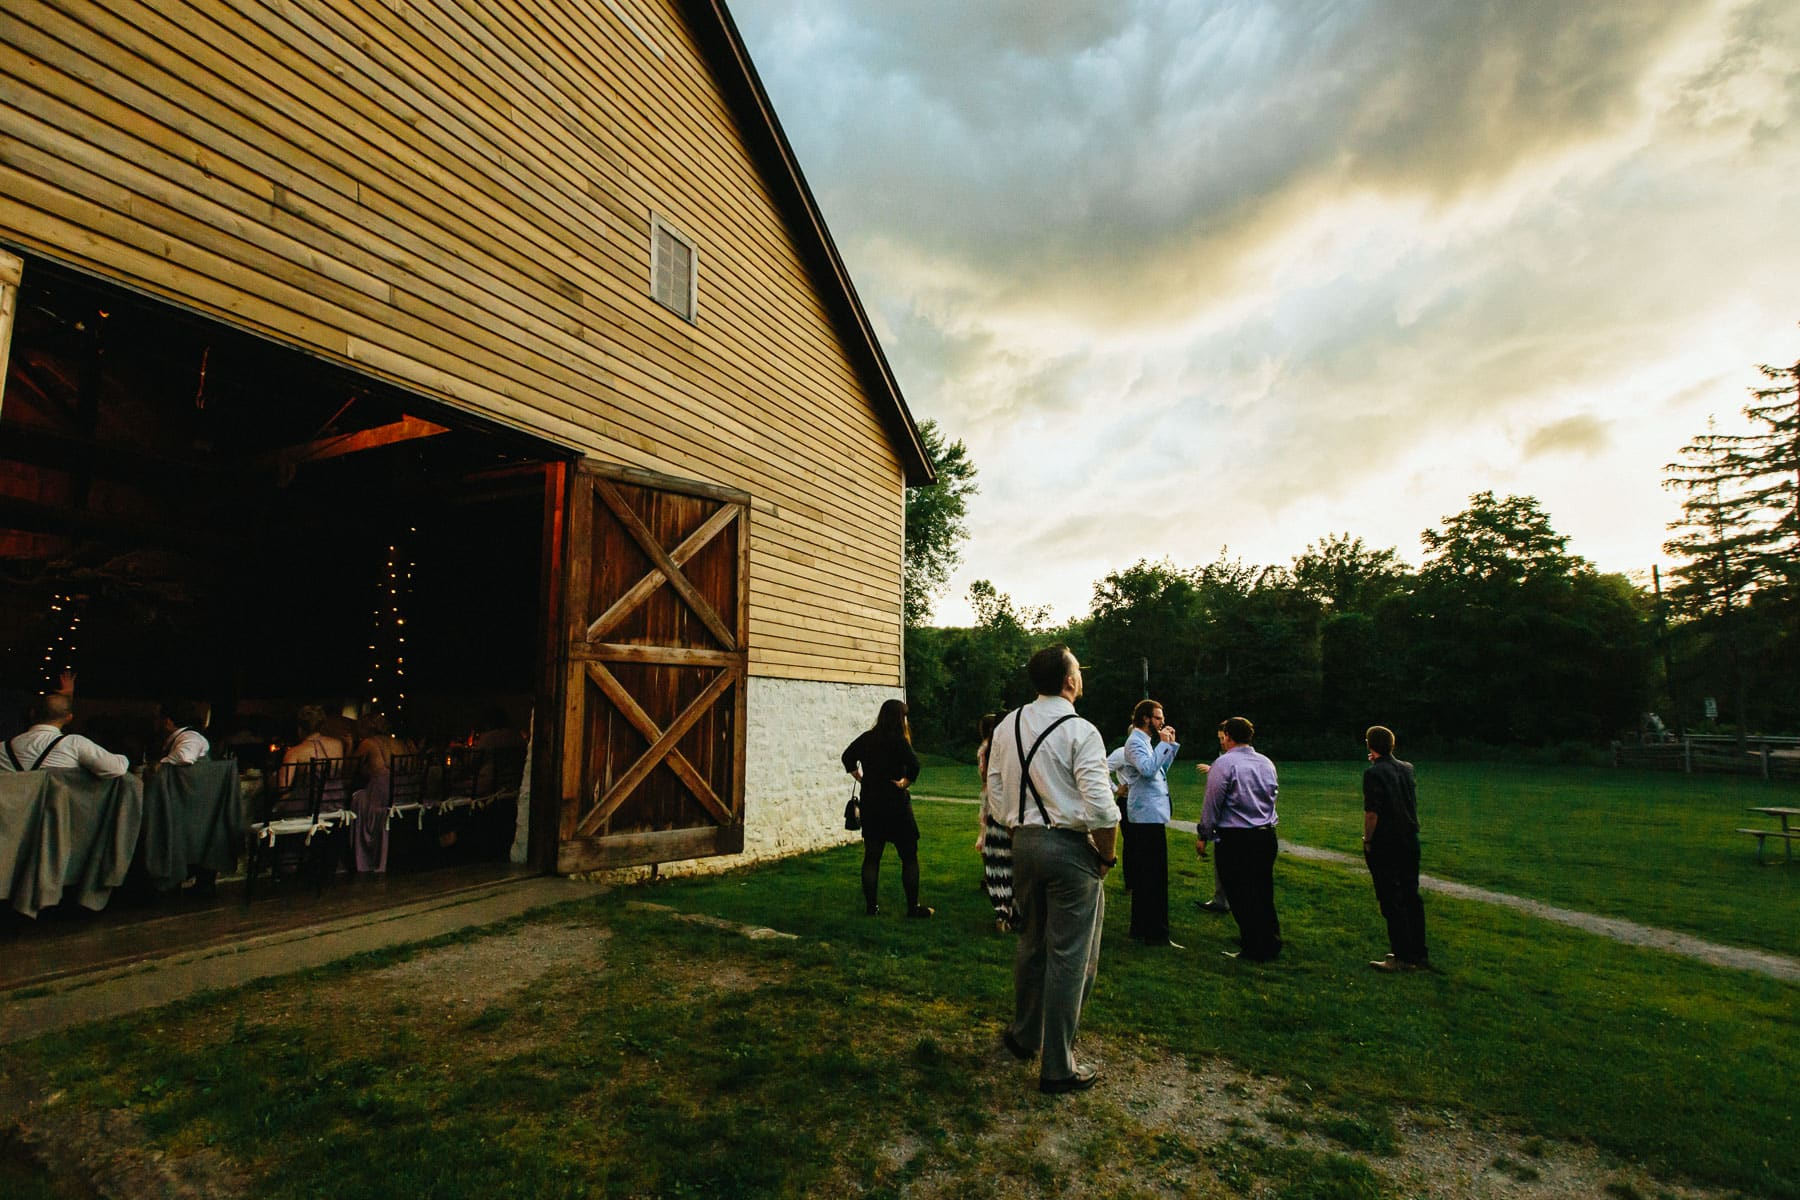 A sunset sky full of dramatic stormy clouds with guests looking up outside a barn at this Ball's Falls wedding.